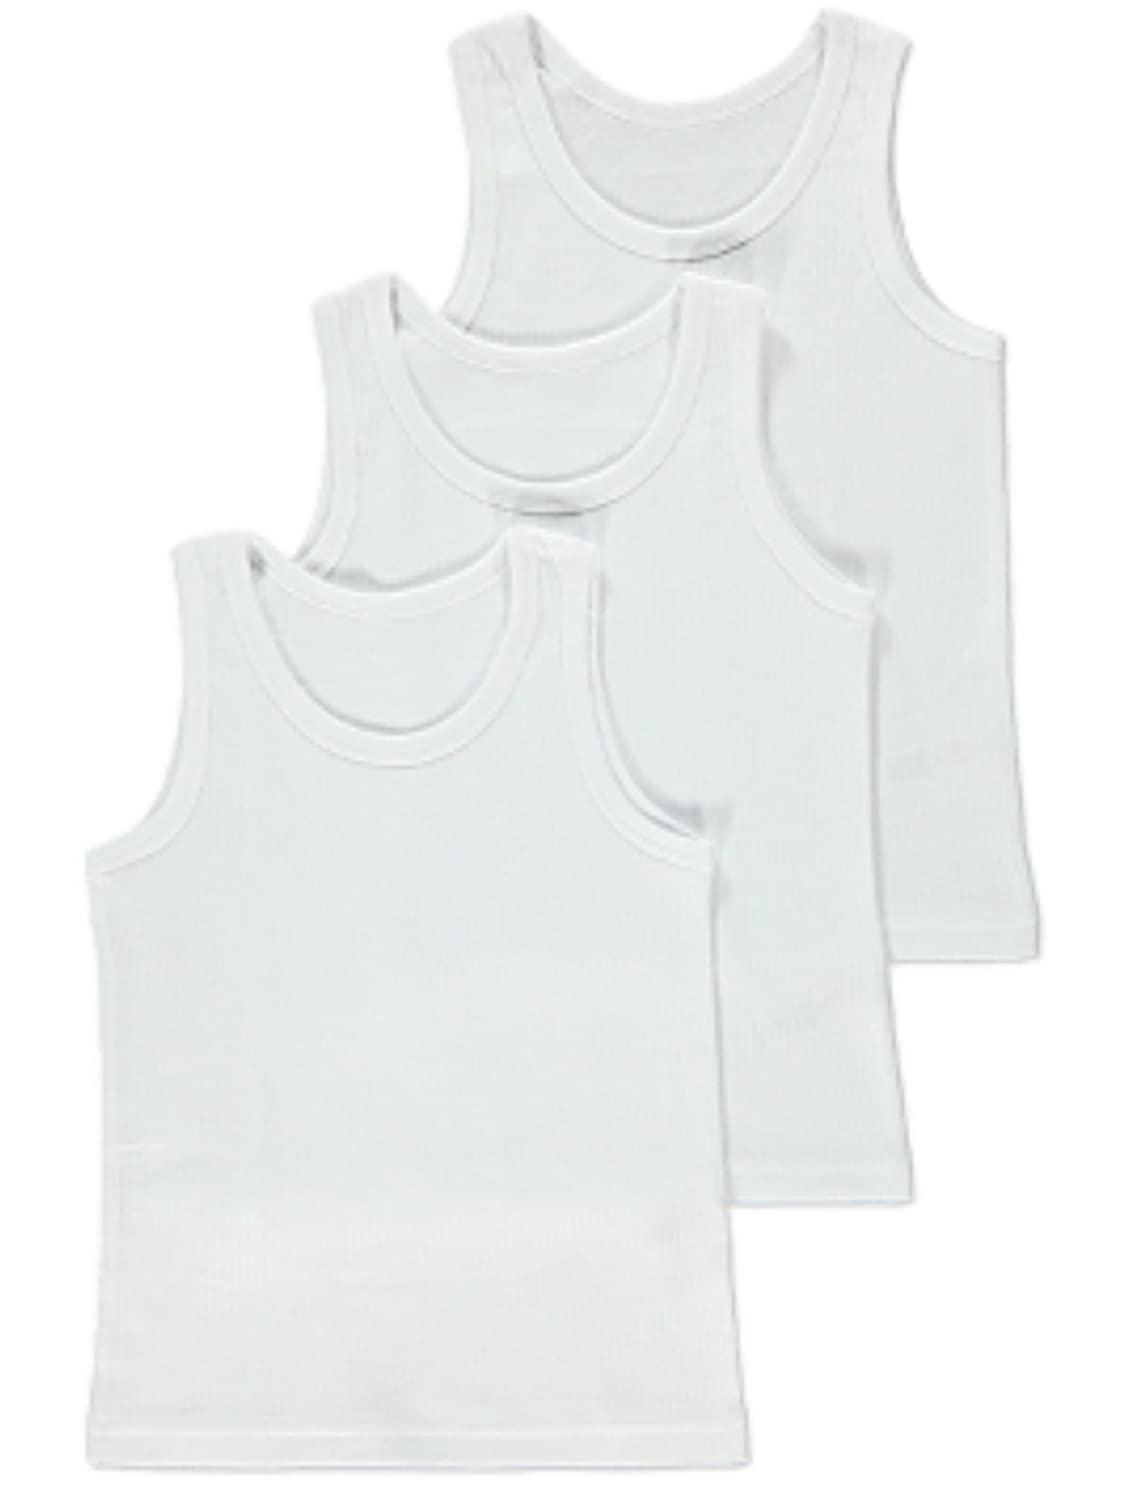 **Back to School** 3 Pack of Boys 100% Cotton Warm Vests / Available in Ages 1 up to 13 years